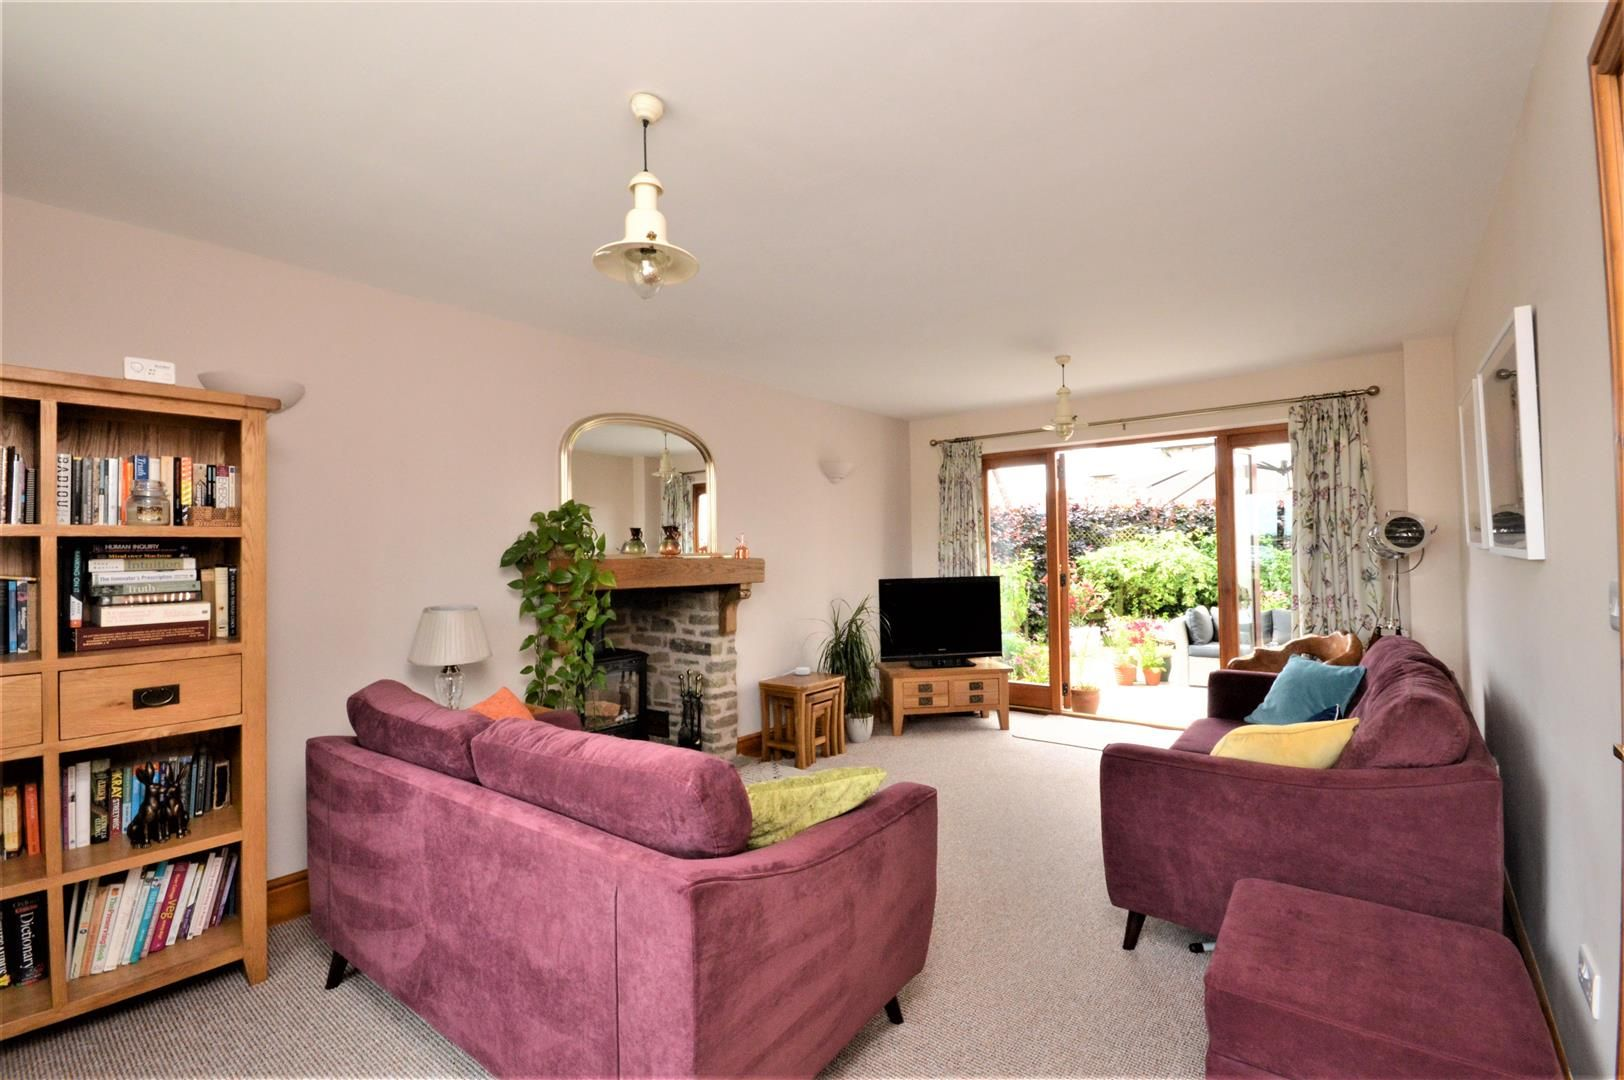 4 bed detached for sale in Eardisley  - Property Image 4